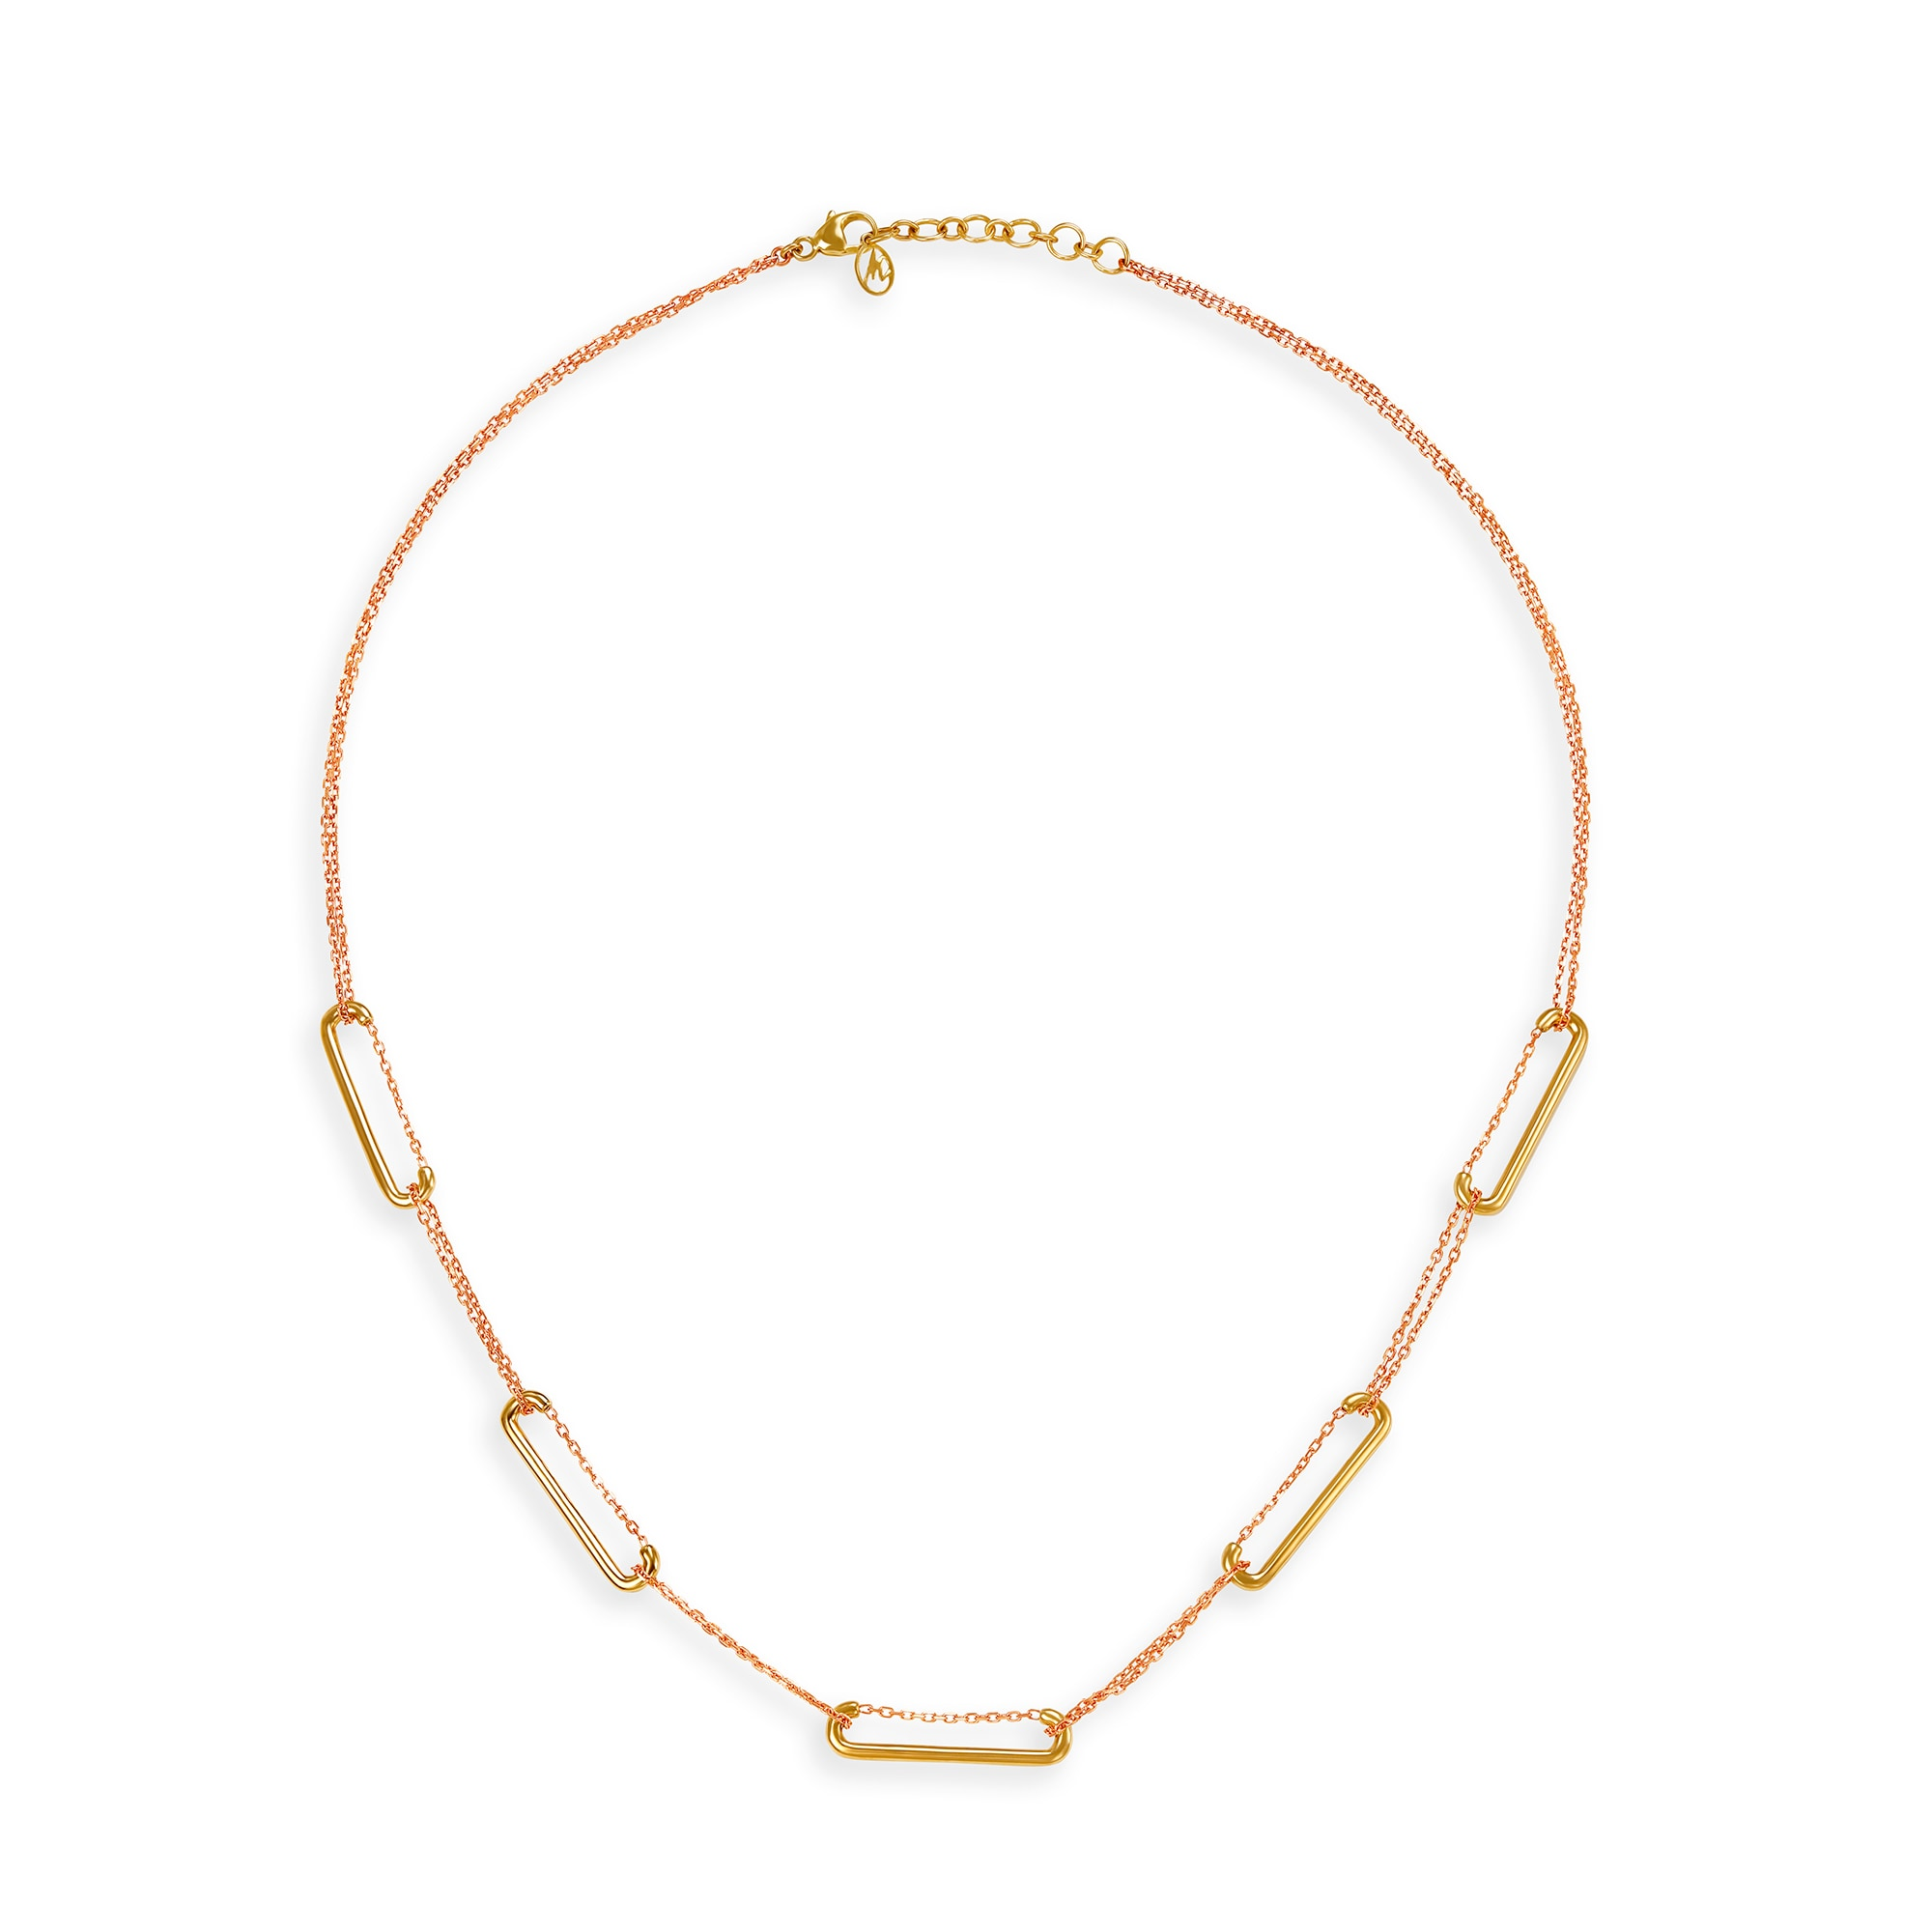 Mia by Tanishq Friends of Bride 14KT Yellow Gold Necklace | Mia